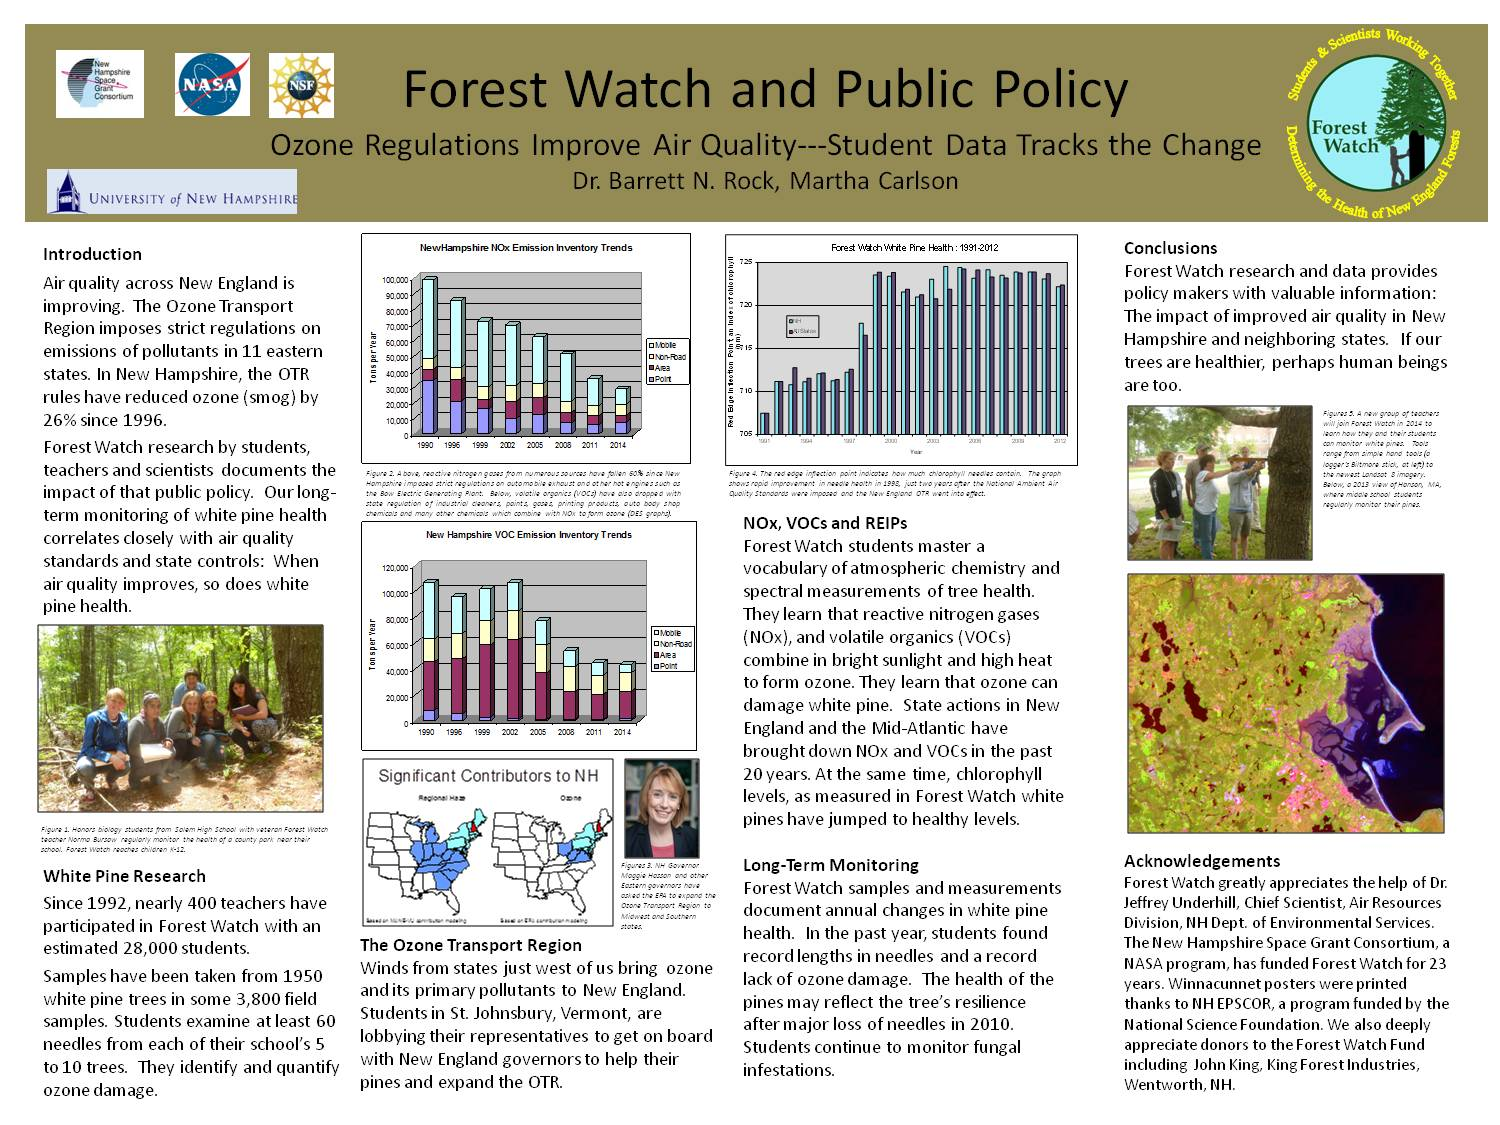 Forest Watch And Public Policy by mrg39